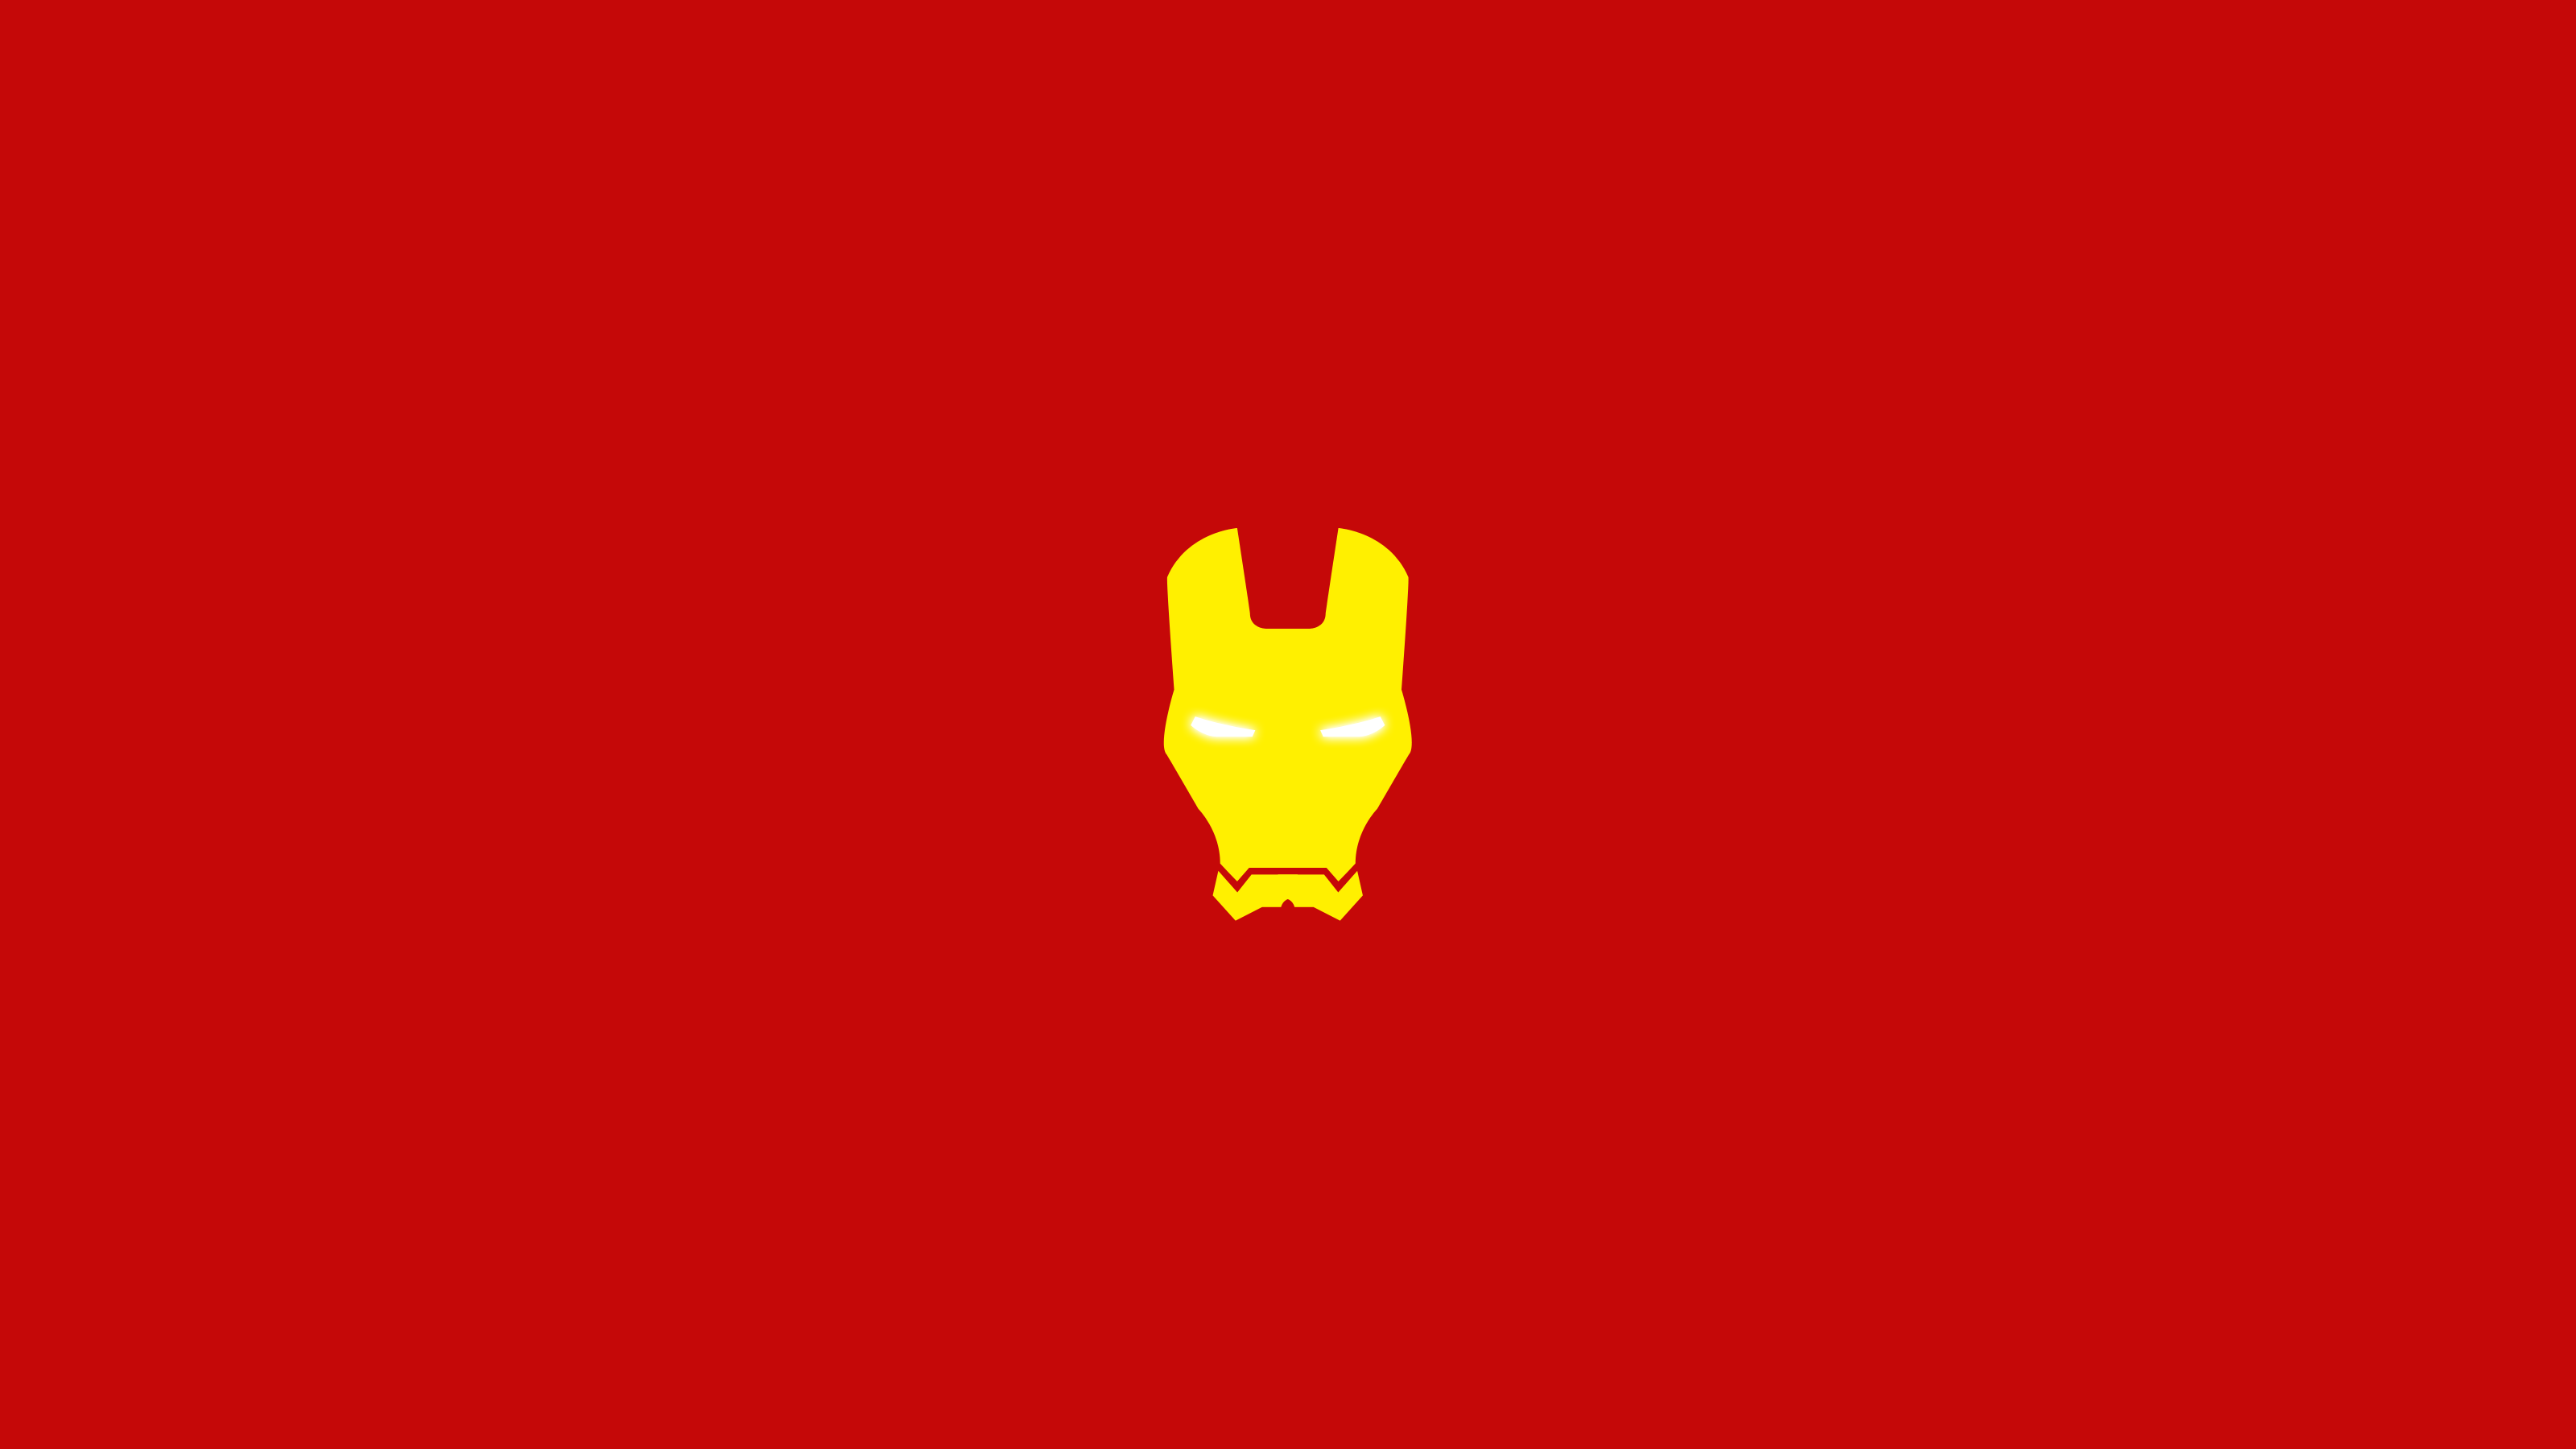 Iron man minimalist wallpaper by zabelon on deviantart for Minimal art reddit